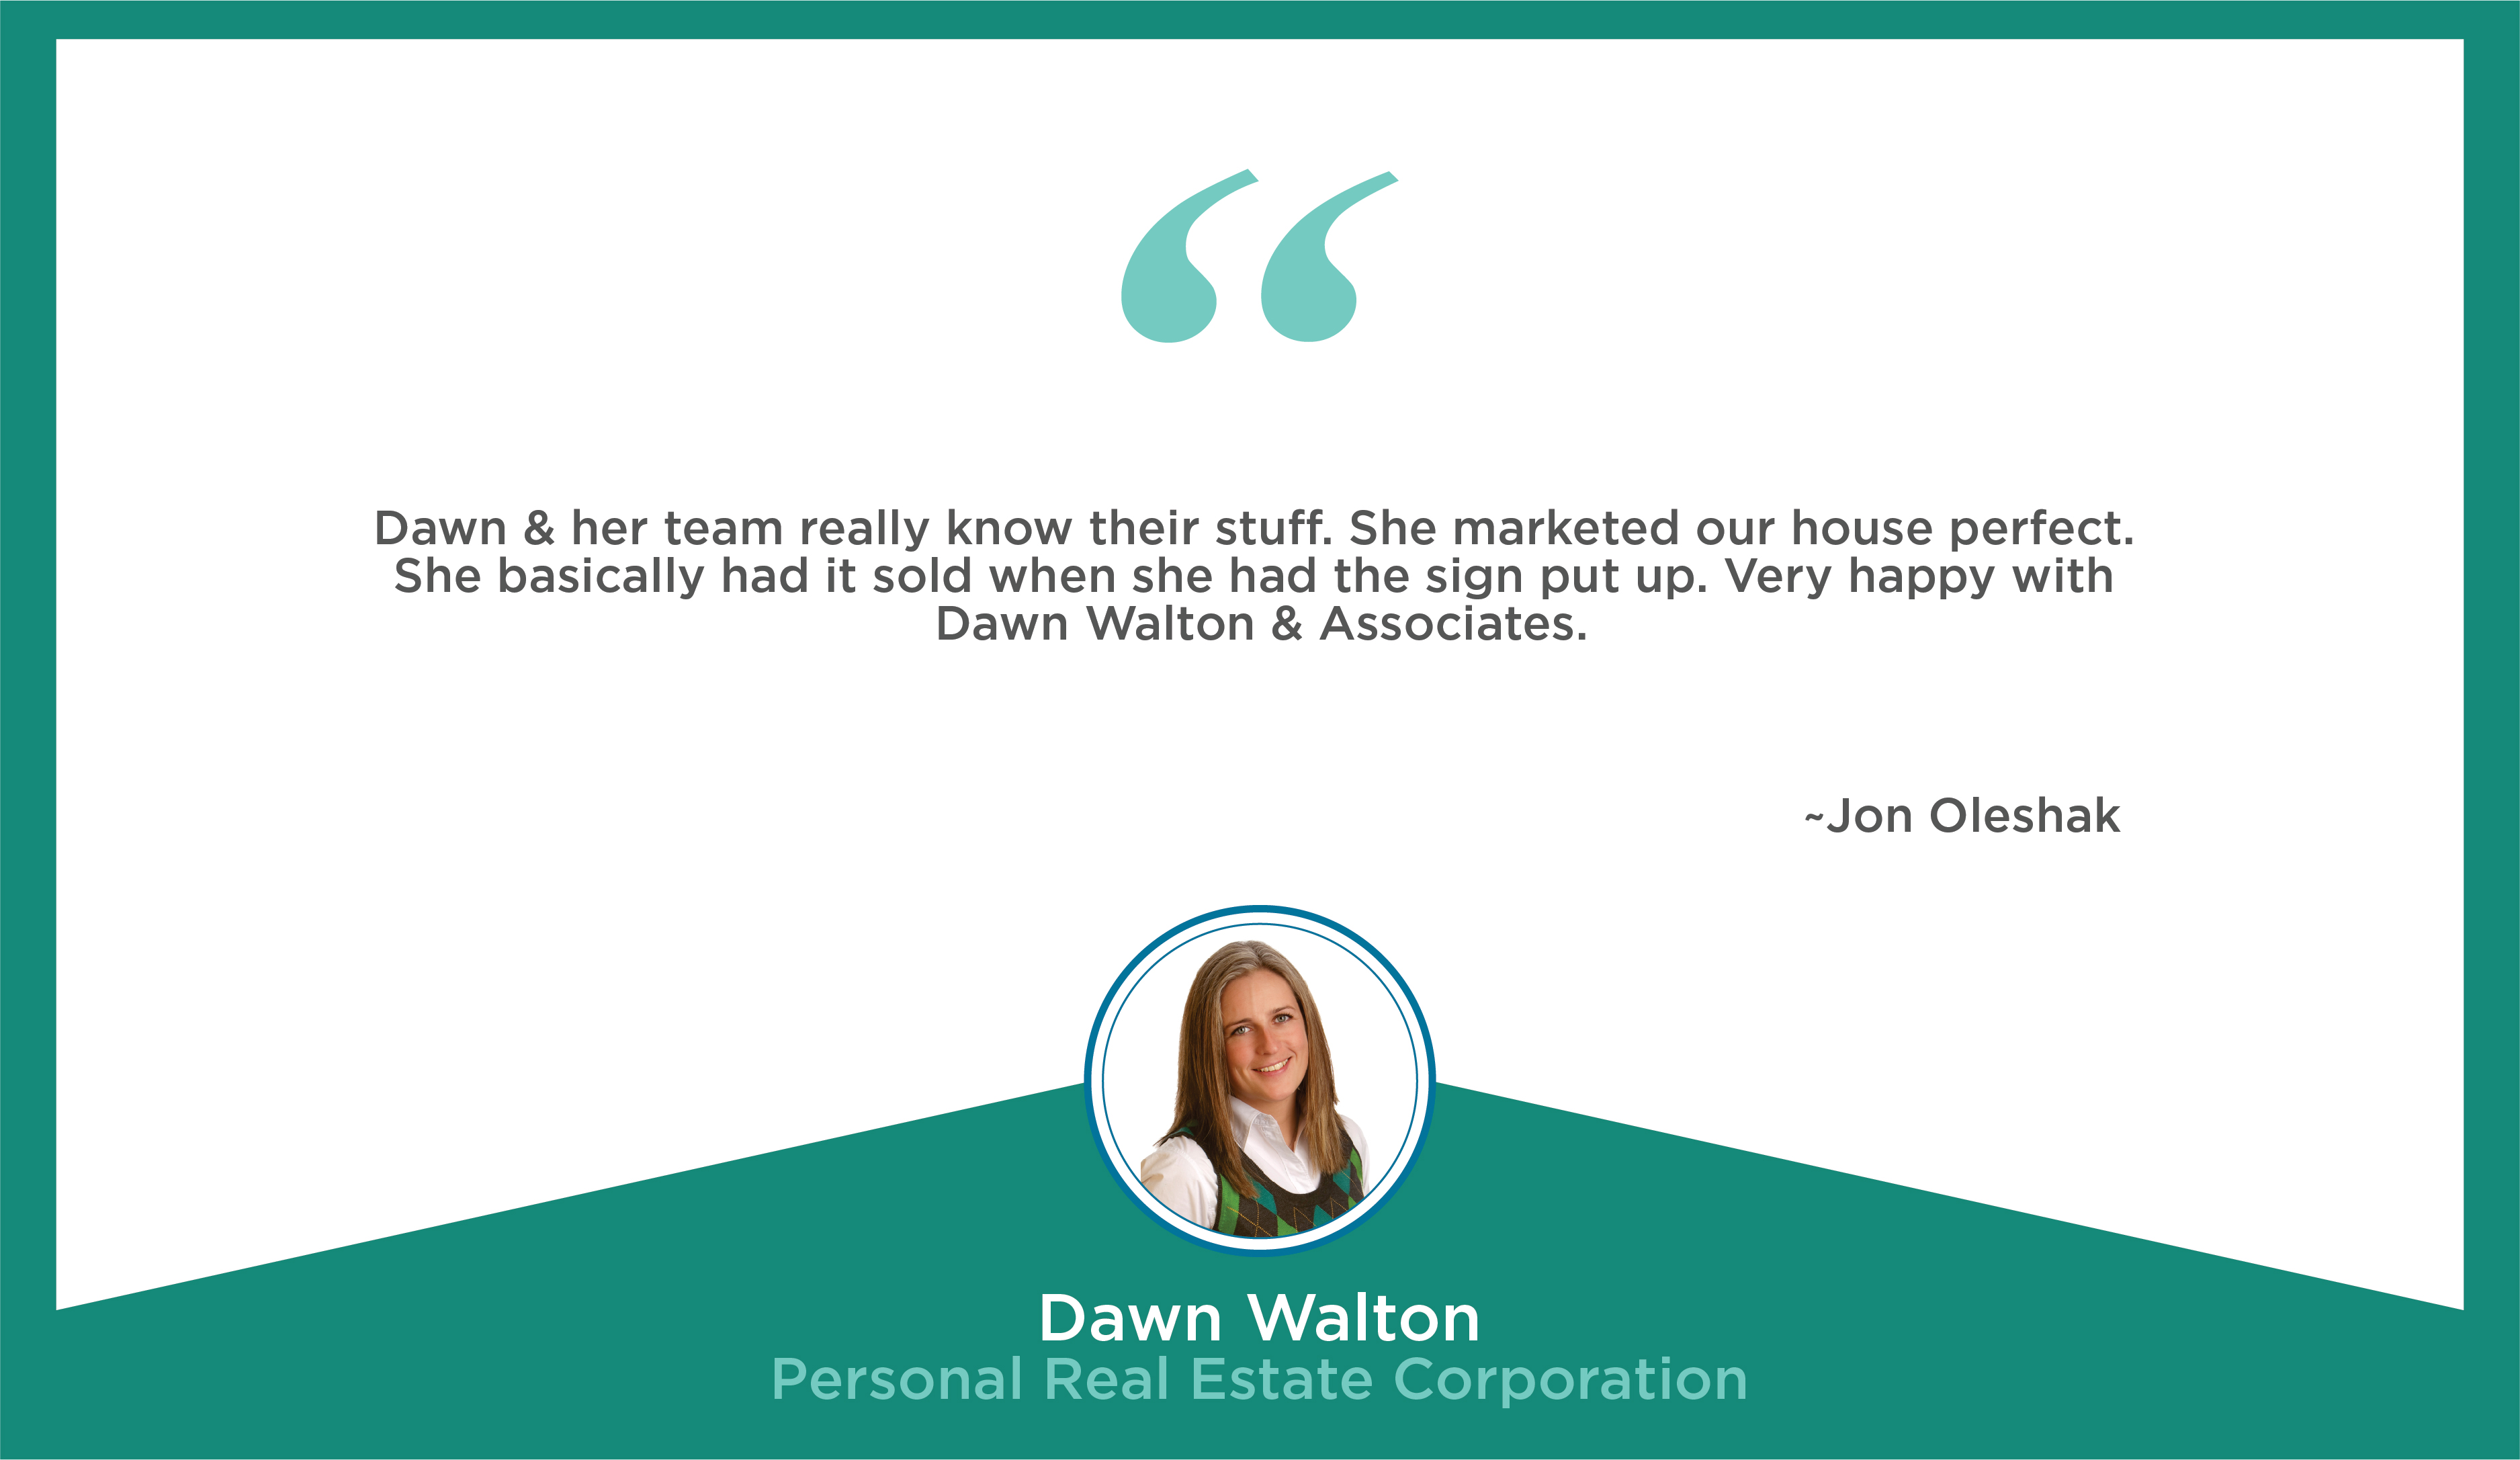 Dawn Walton and Associates Testimonials - Dawn Walton